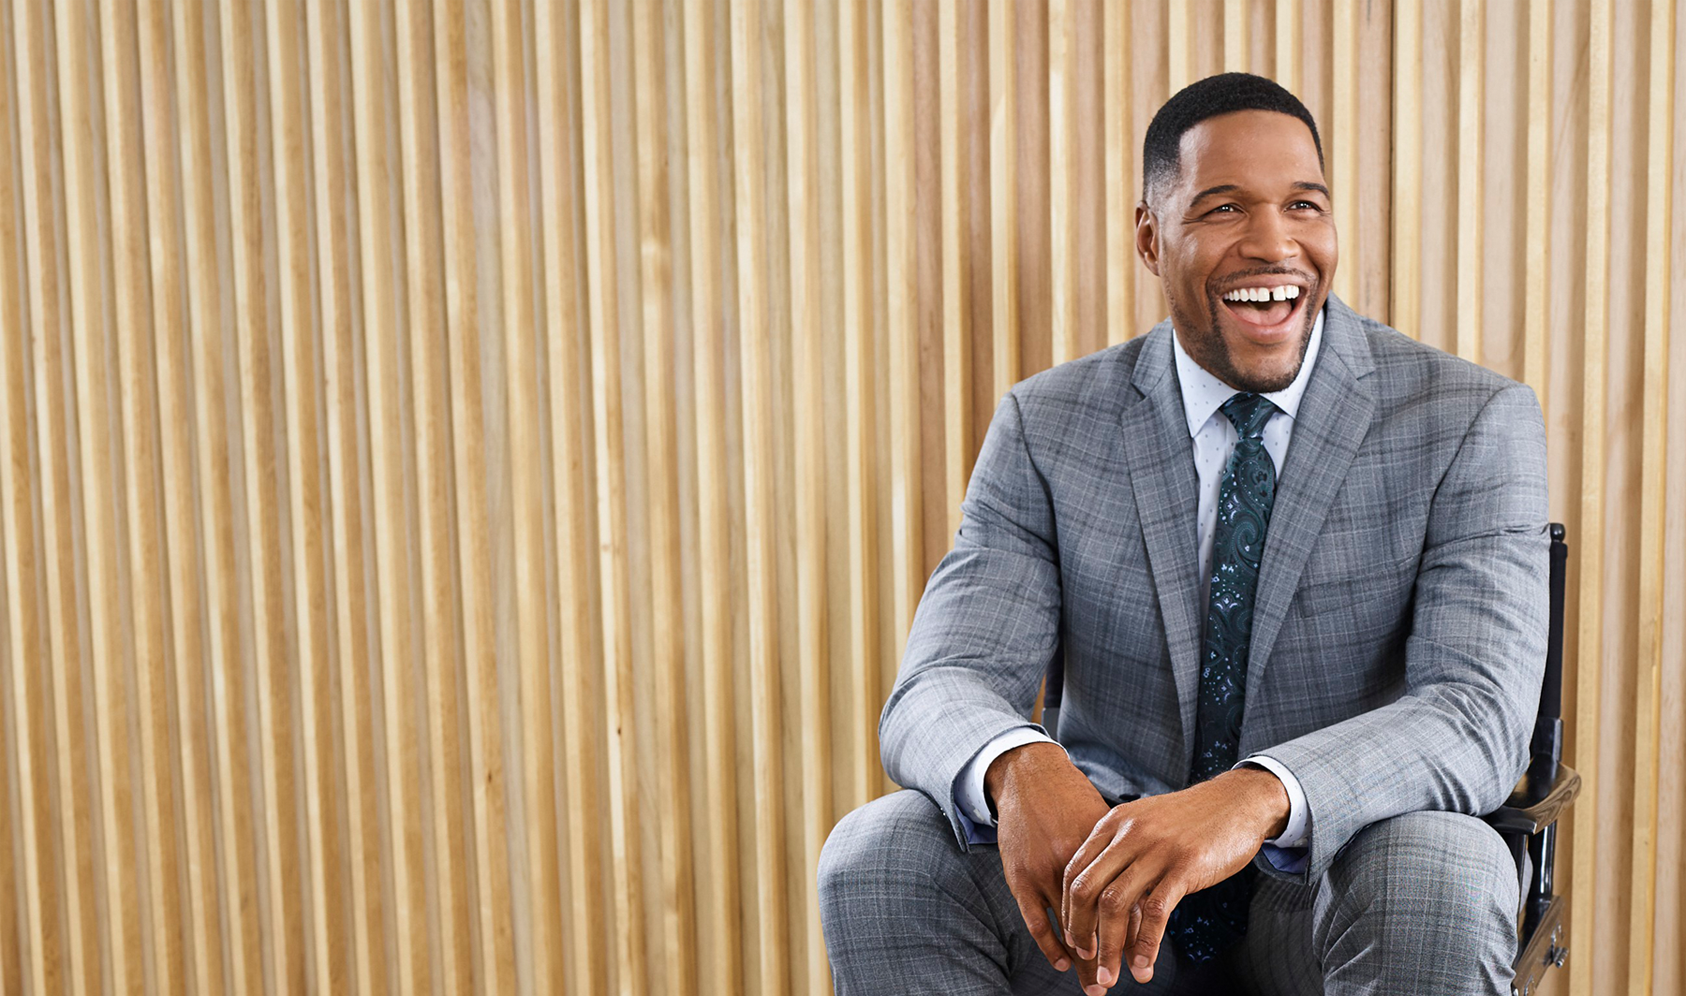 Michael Strahan: From the NFL to Prime-Time Television